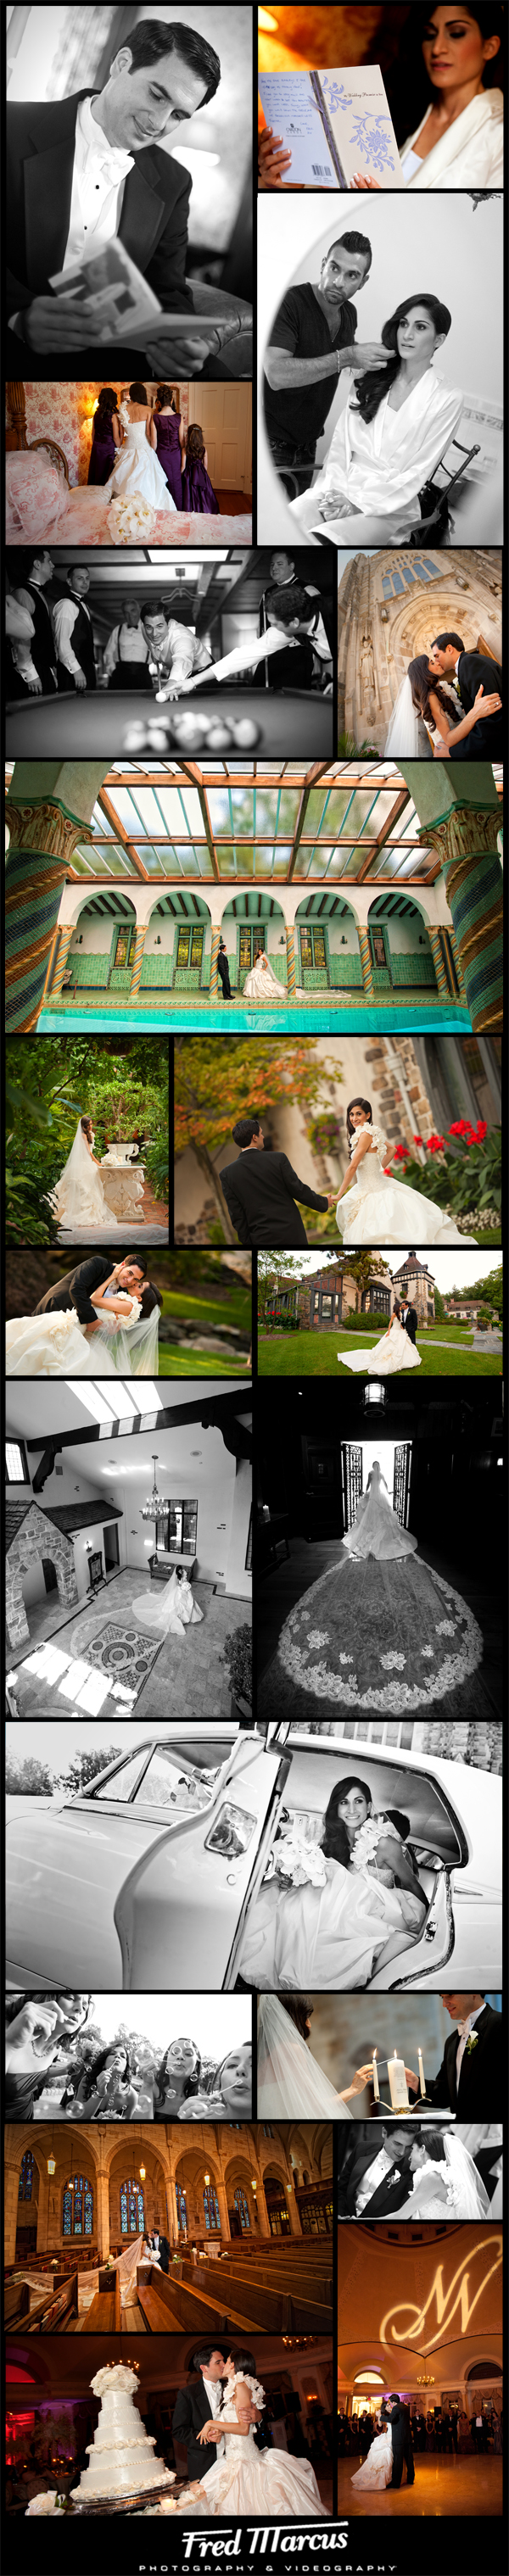 A Wedding for Nick and Nicole at the Pleasantdale Chateau